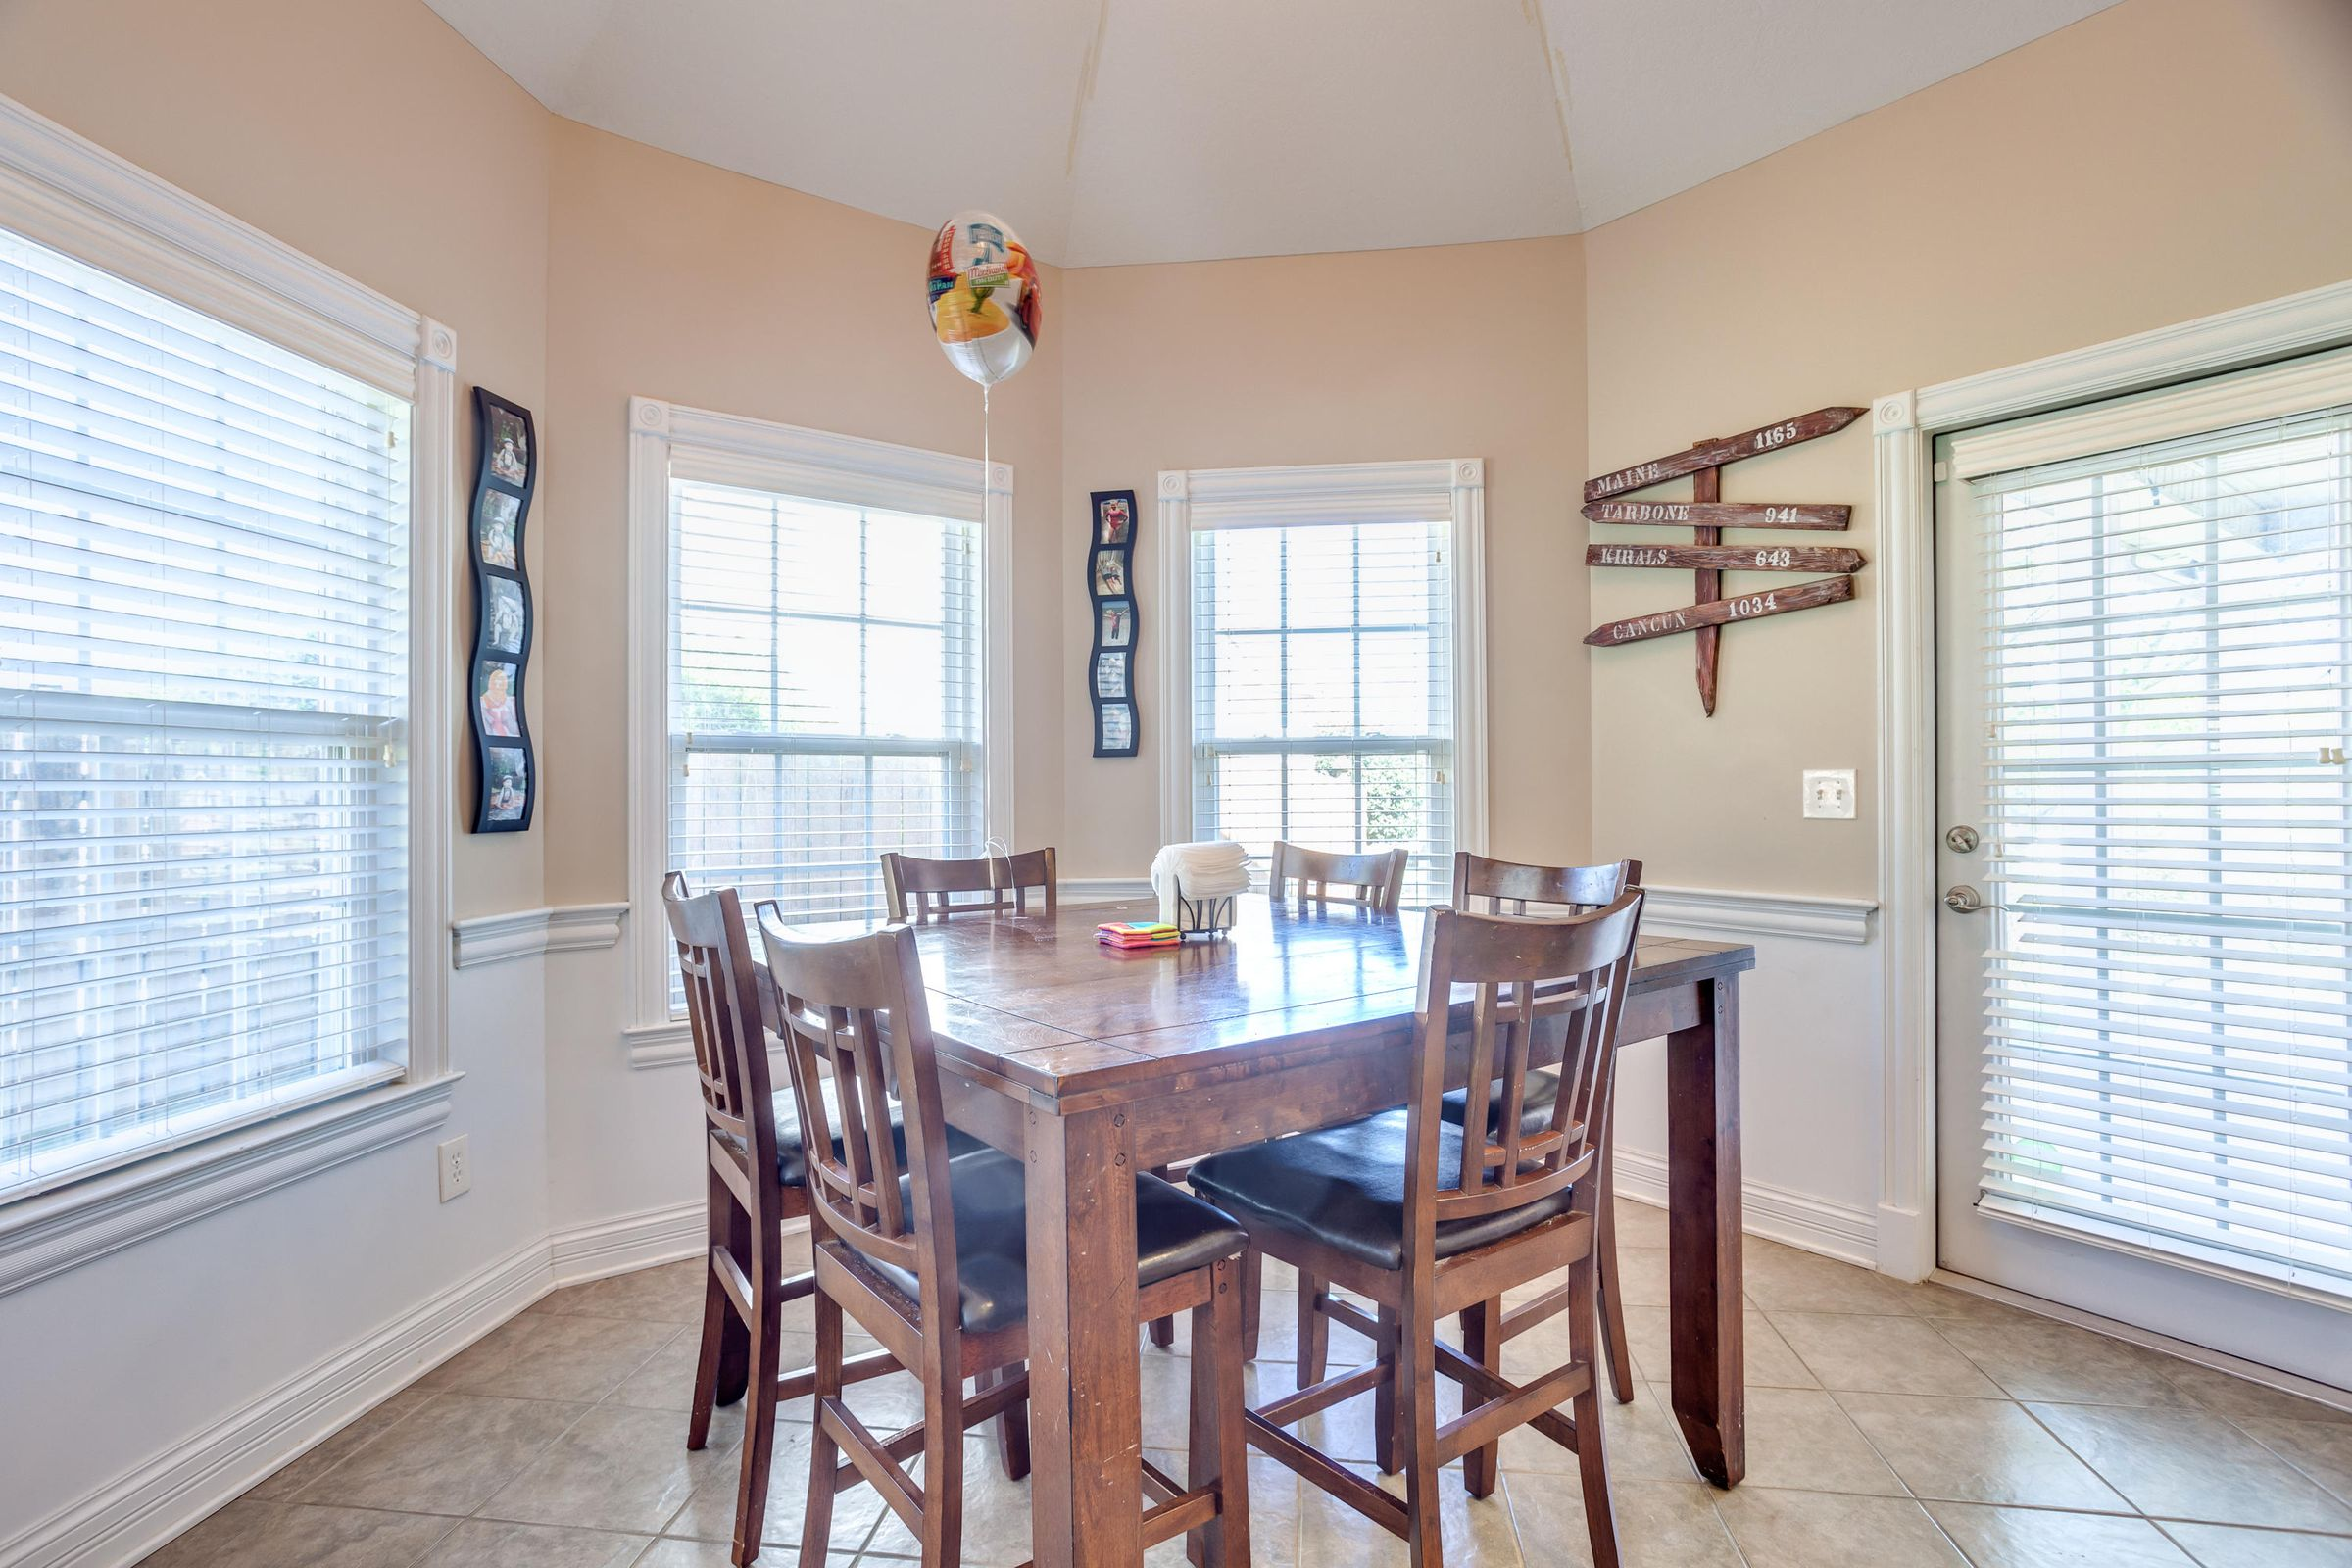 1151 Paxton Drive - Breakfast nook